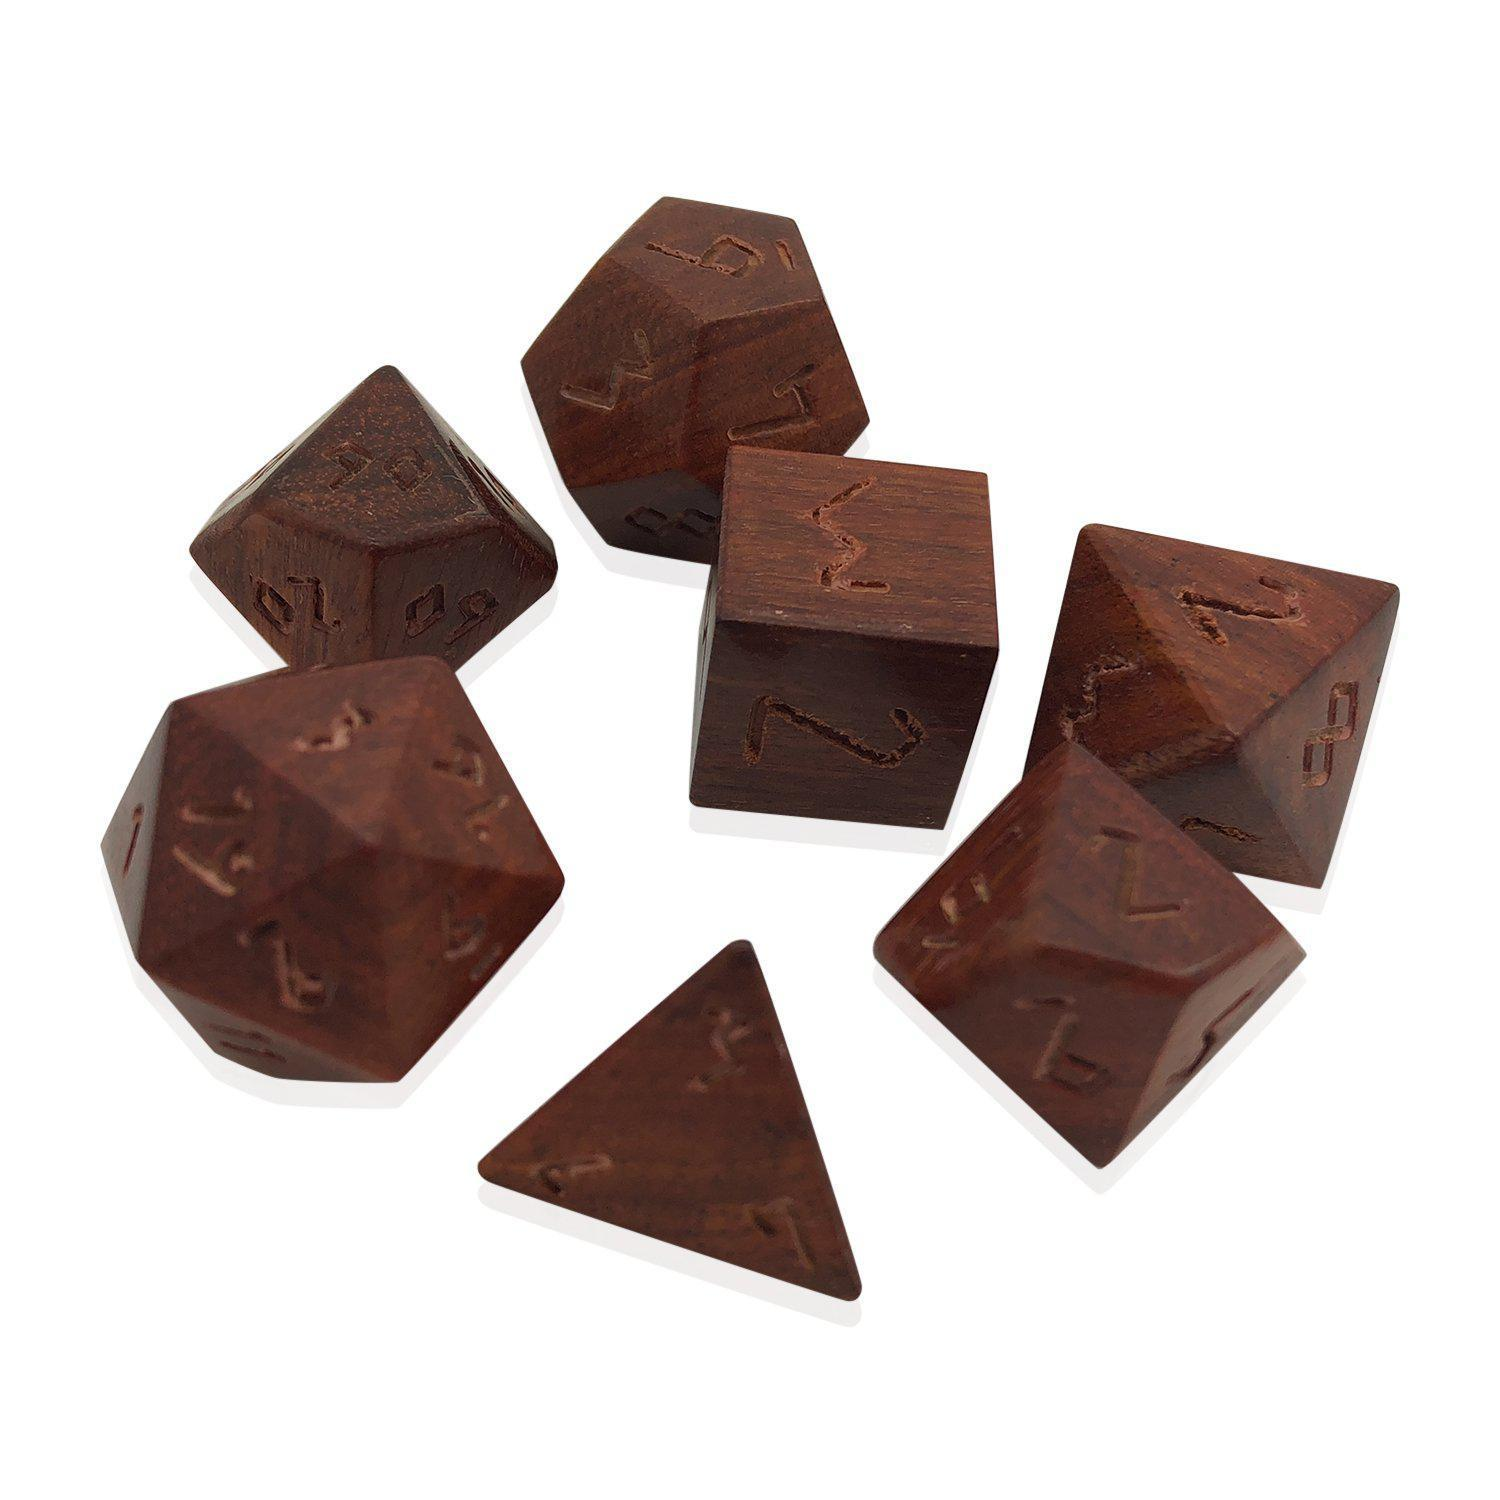 Red Sandalwood - 7 Piece RPG Wooden Dice Set-Dice-Norse Foundry-DND Dice-Polyhedral Dice-D20-Metal Dice-Precision Dice-Luxury Dice-Dungeons and Dragons-D&D-